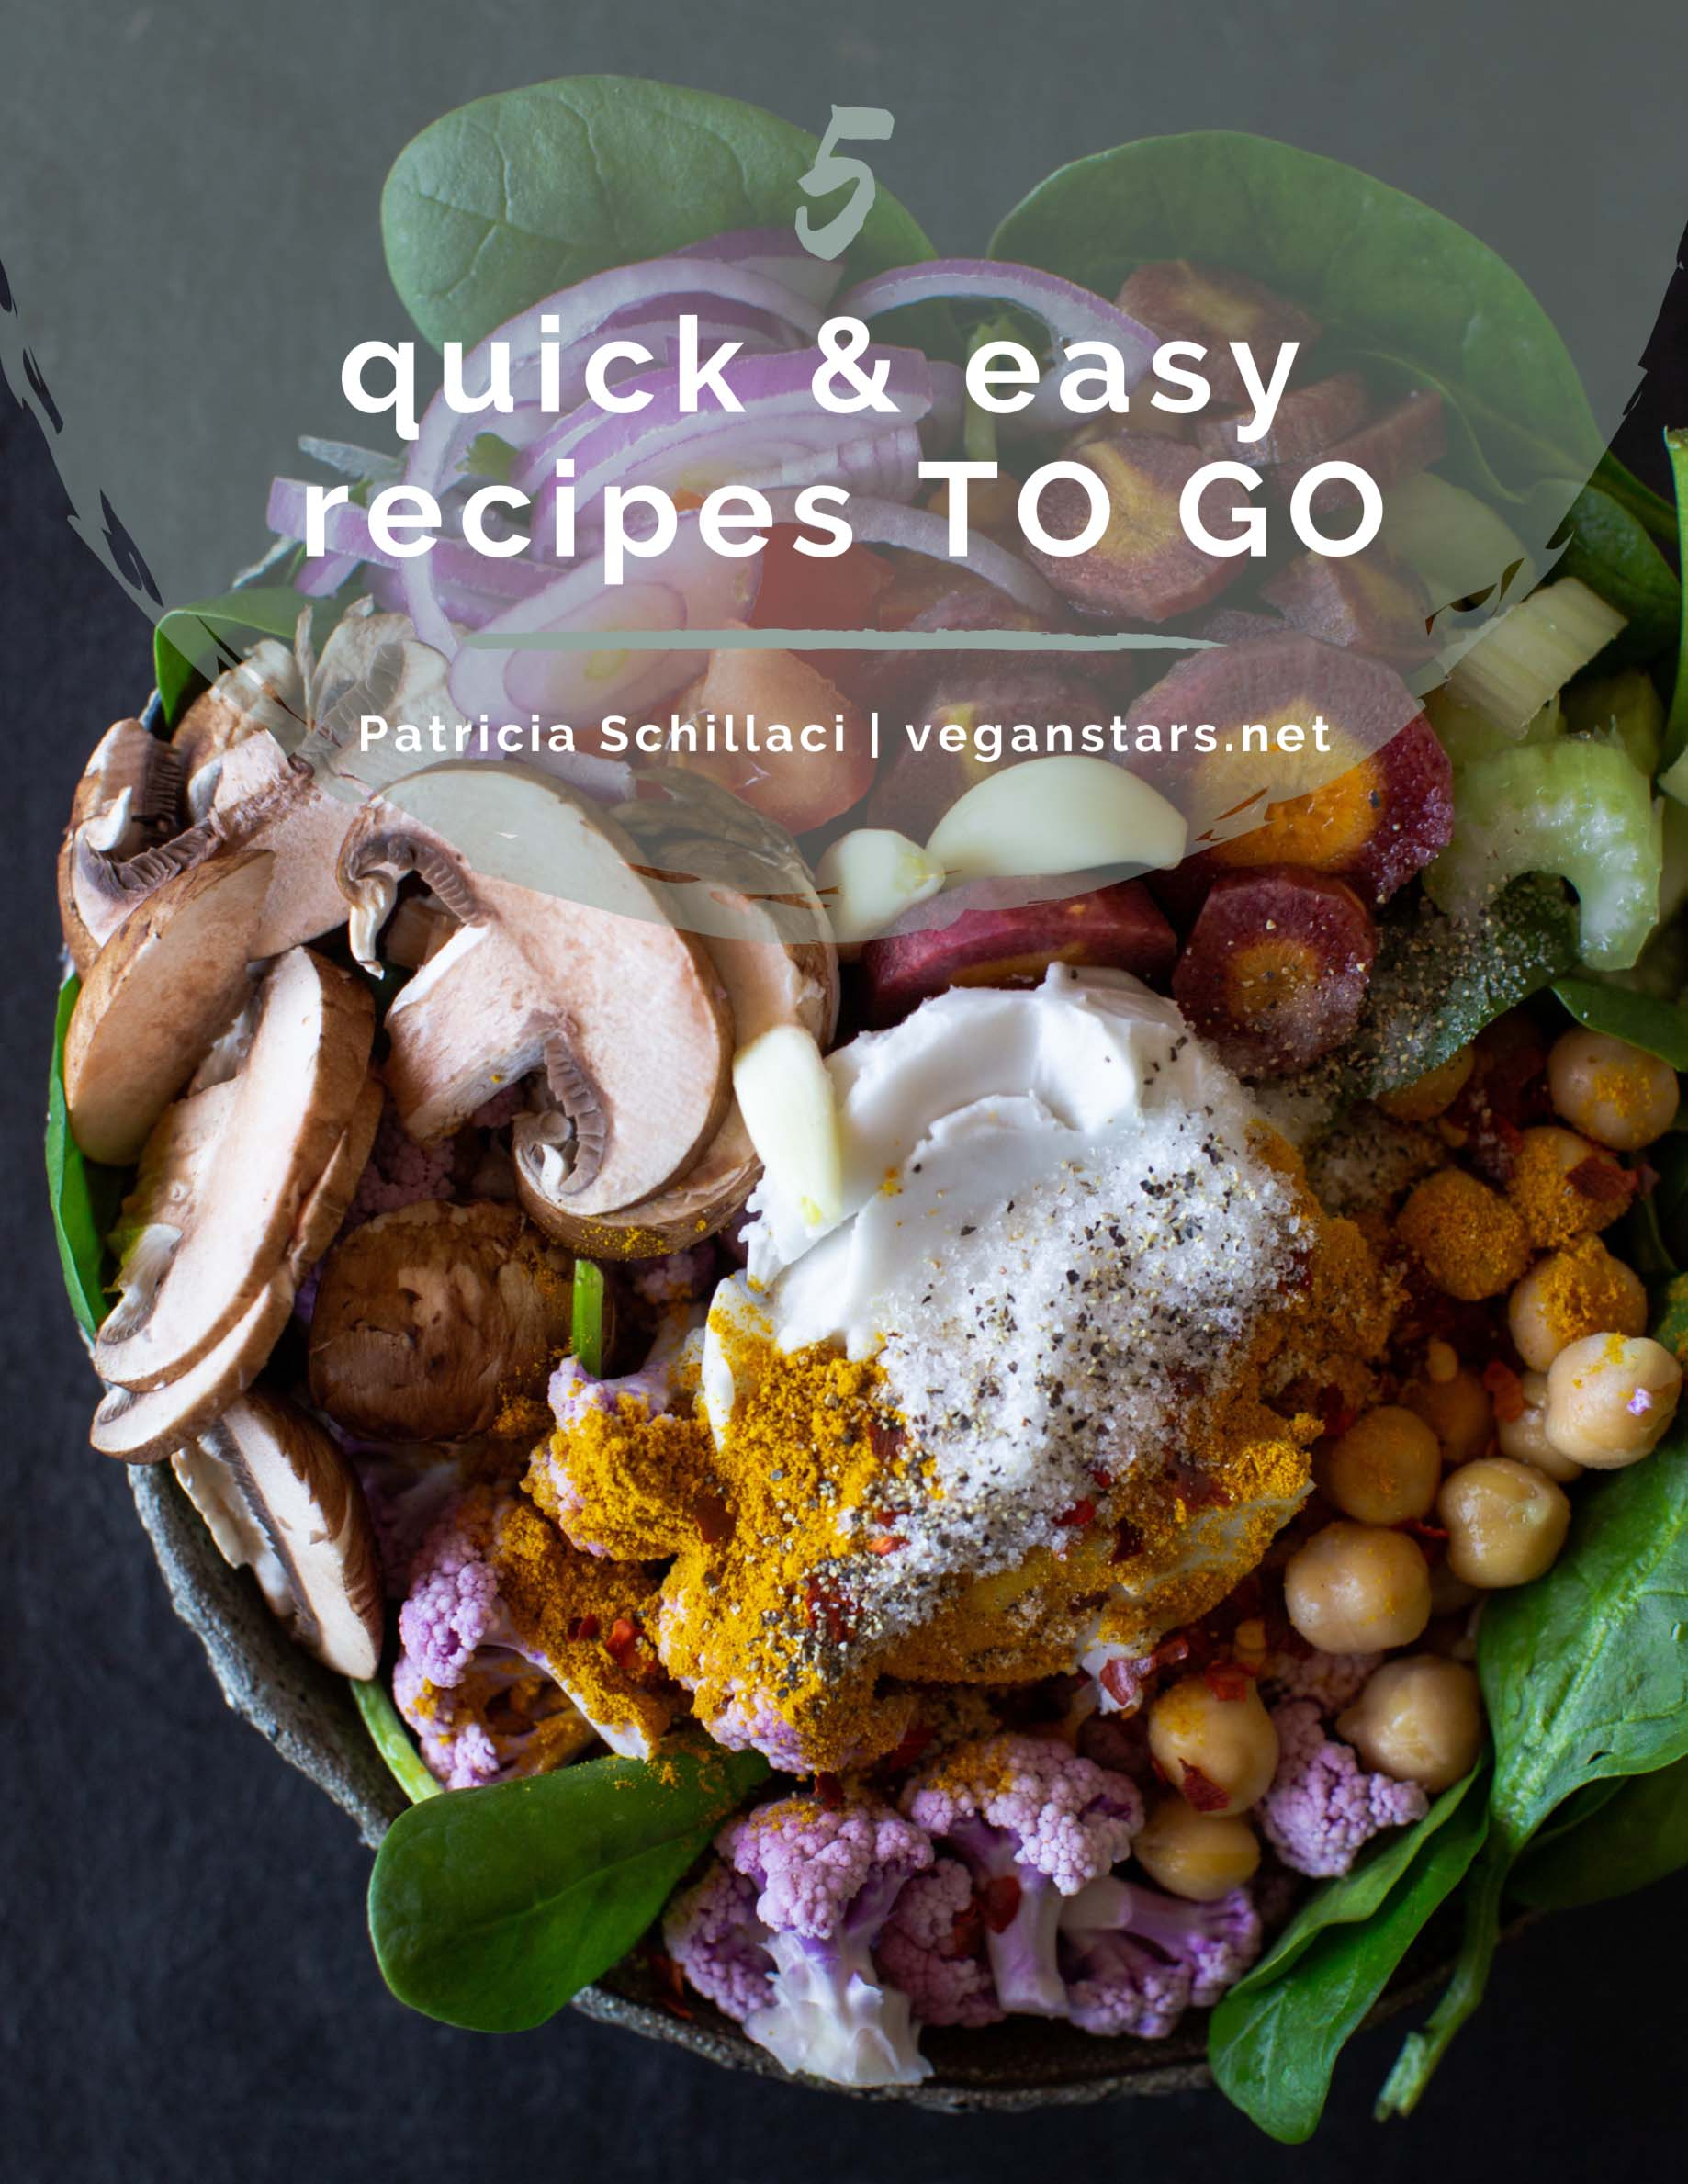 5 quick & easy recipes TO GO